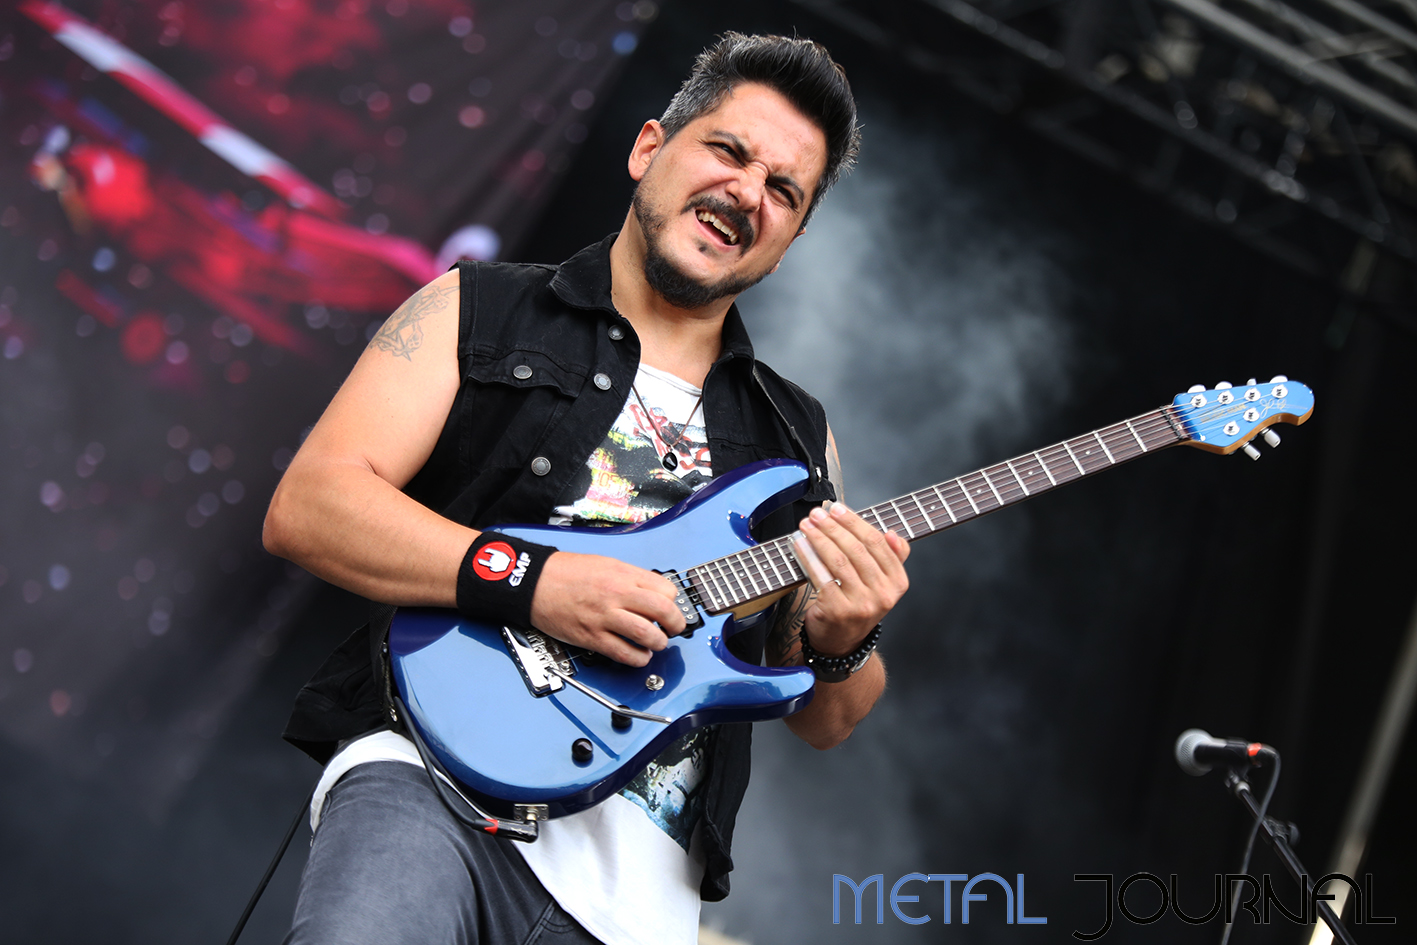 los barones - leyendas del rock 2019 metal journal pic 3